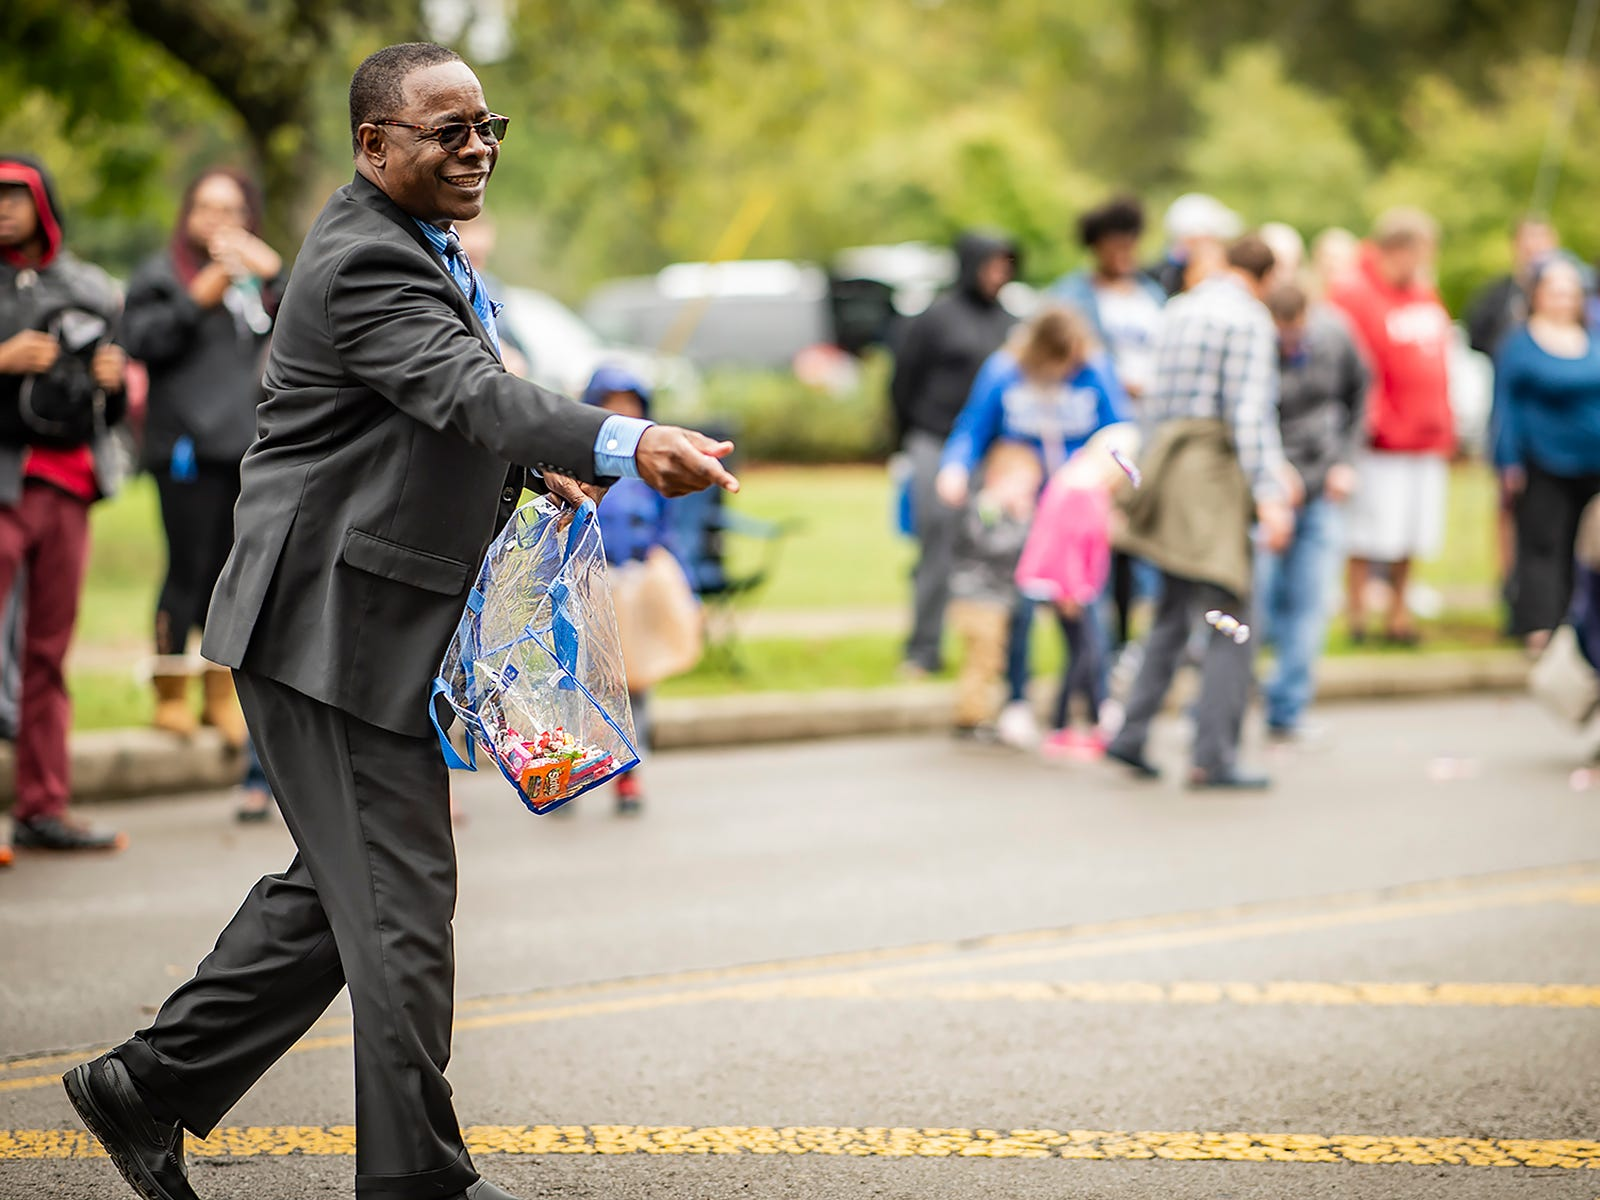 Dr. McPhee passes out candy at the parade.